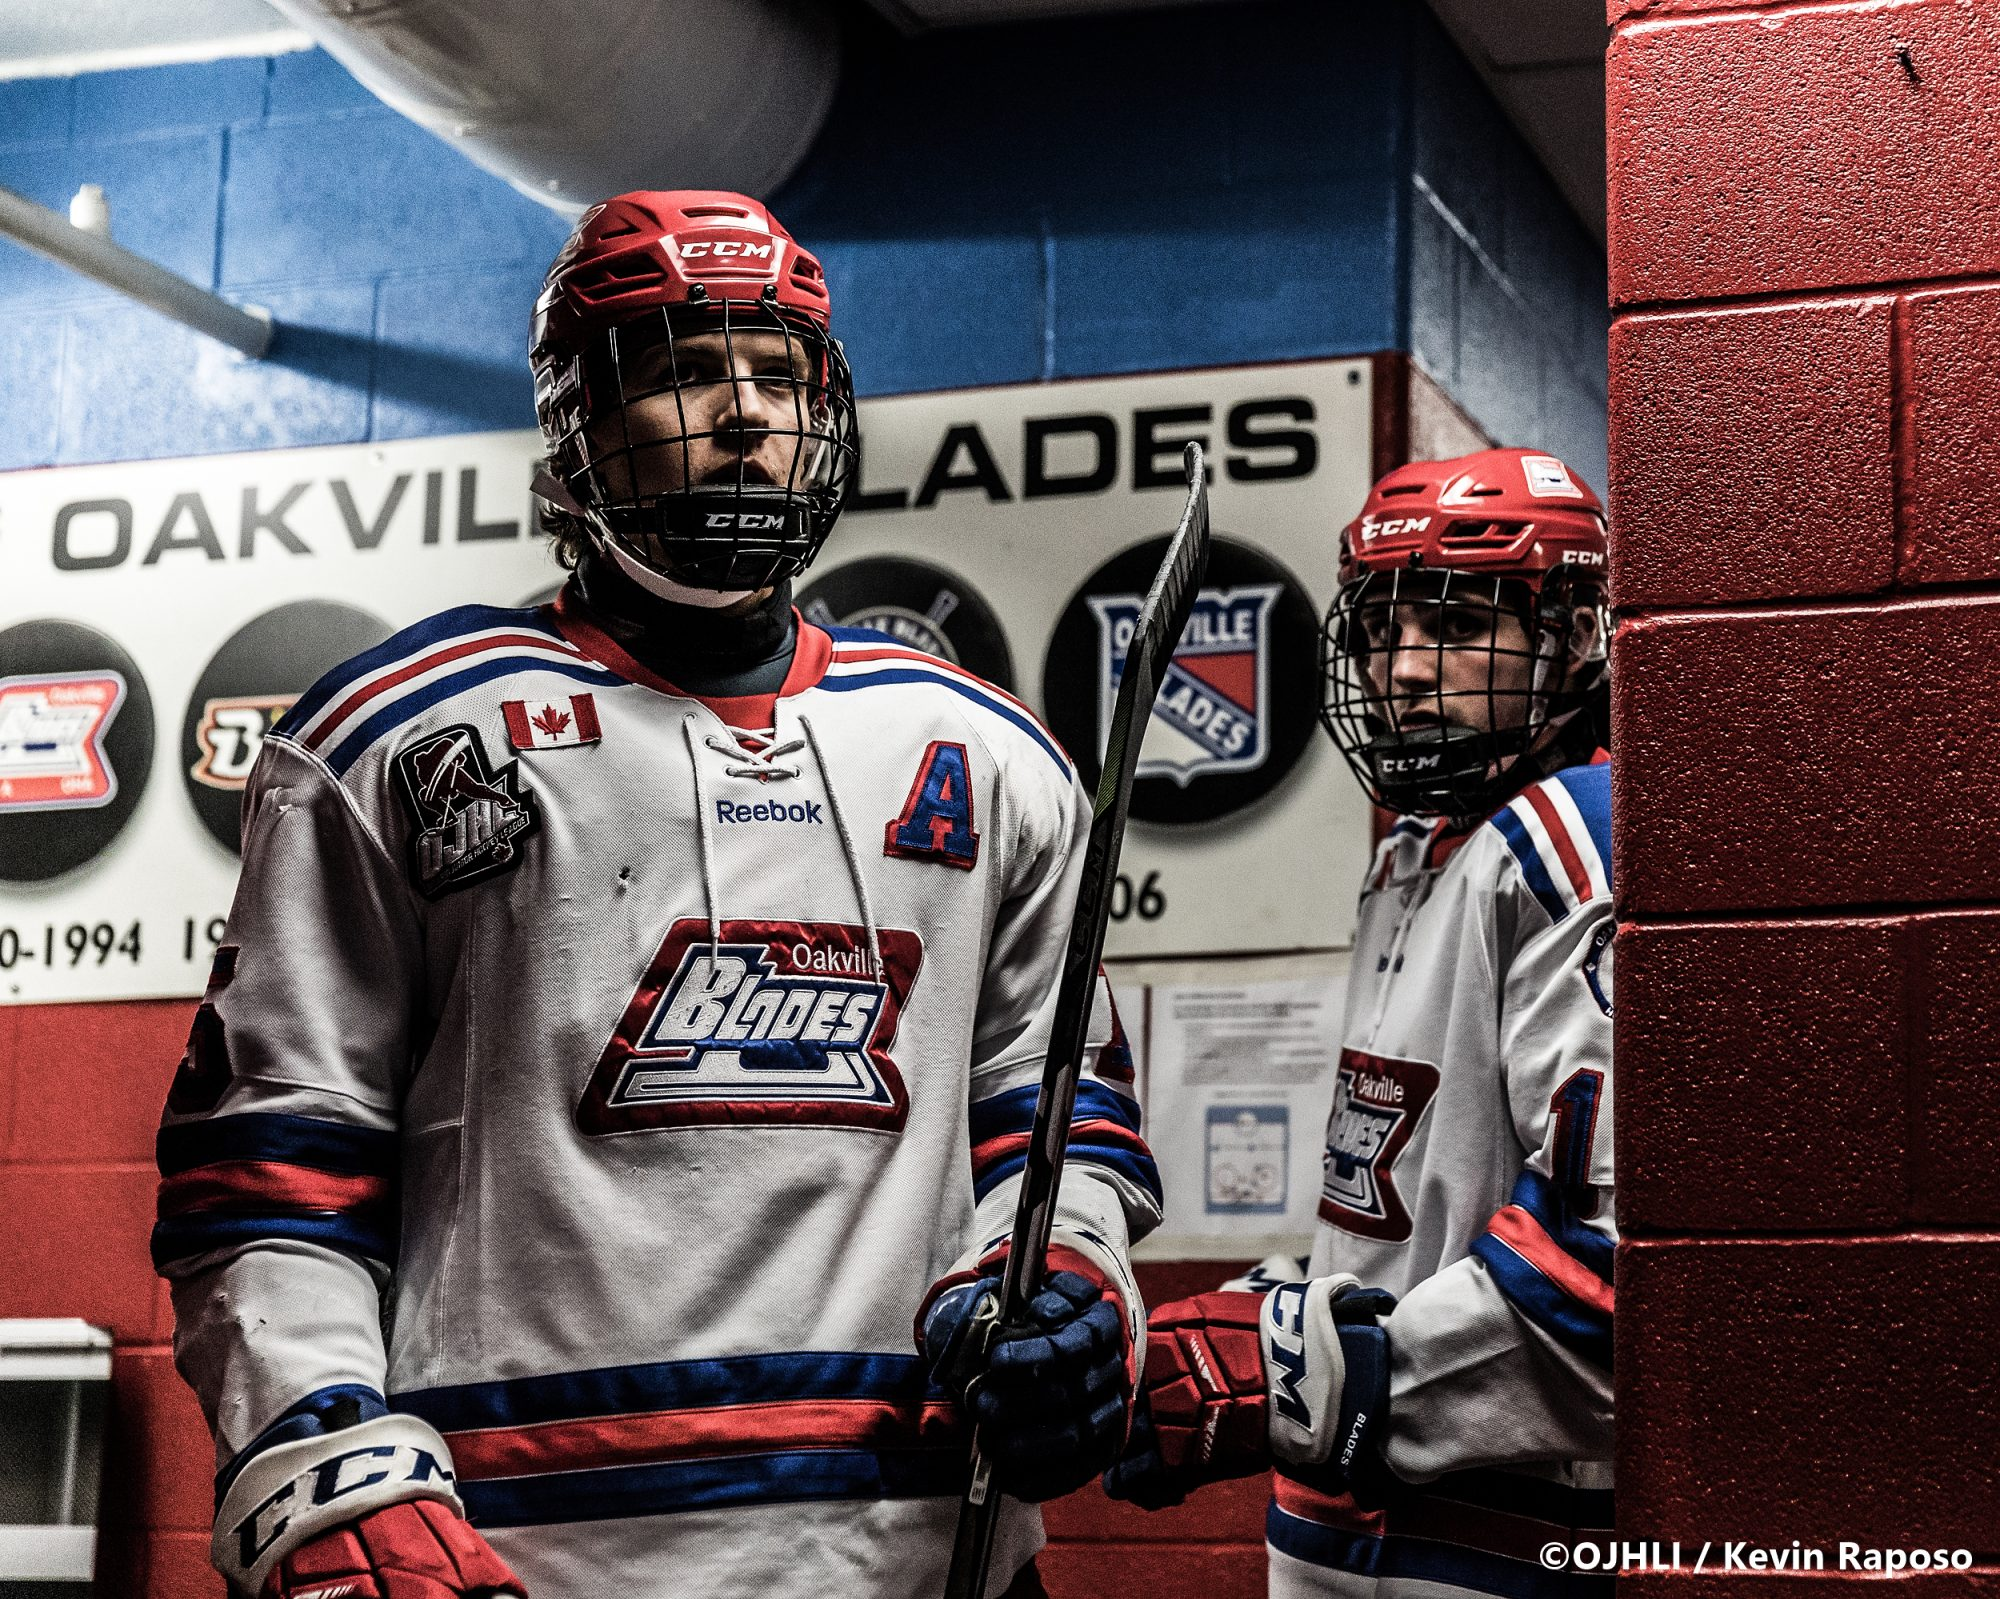 Ontario Junior Hockey League, post-season first round. Game five of the best of seven series between the Toronto Jr. Canadiens and Oakville Blades